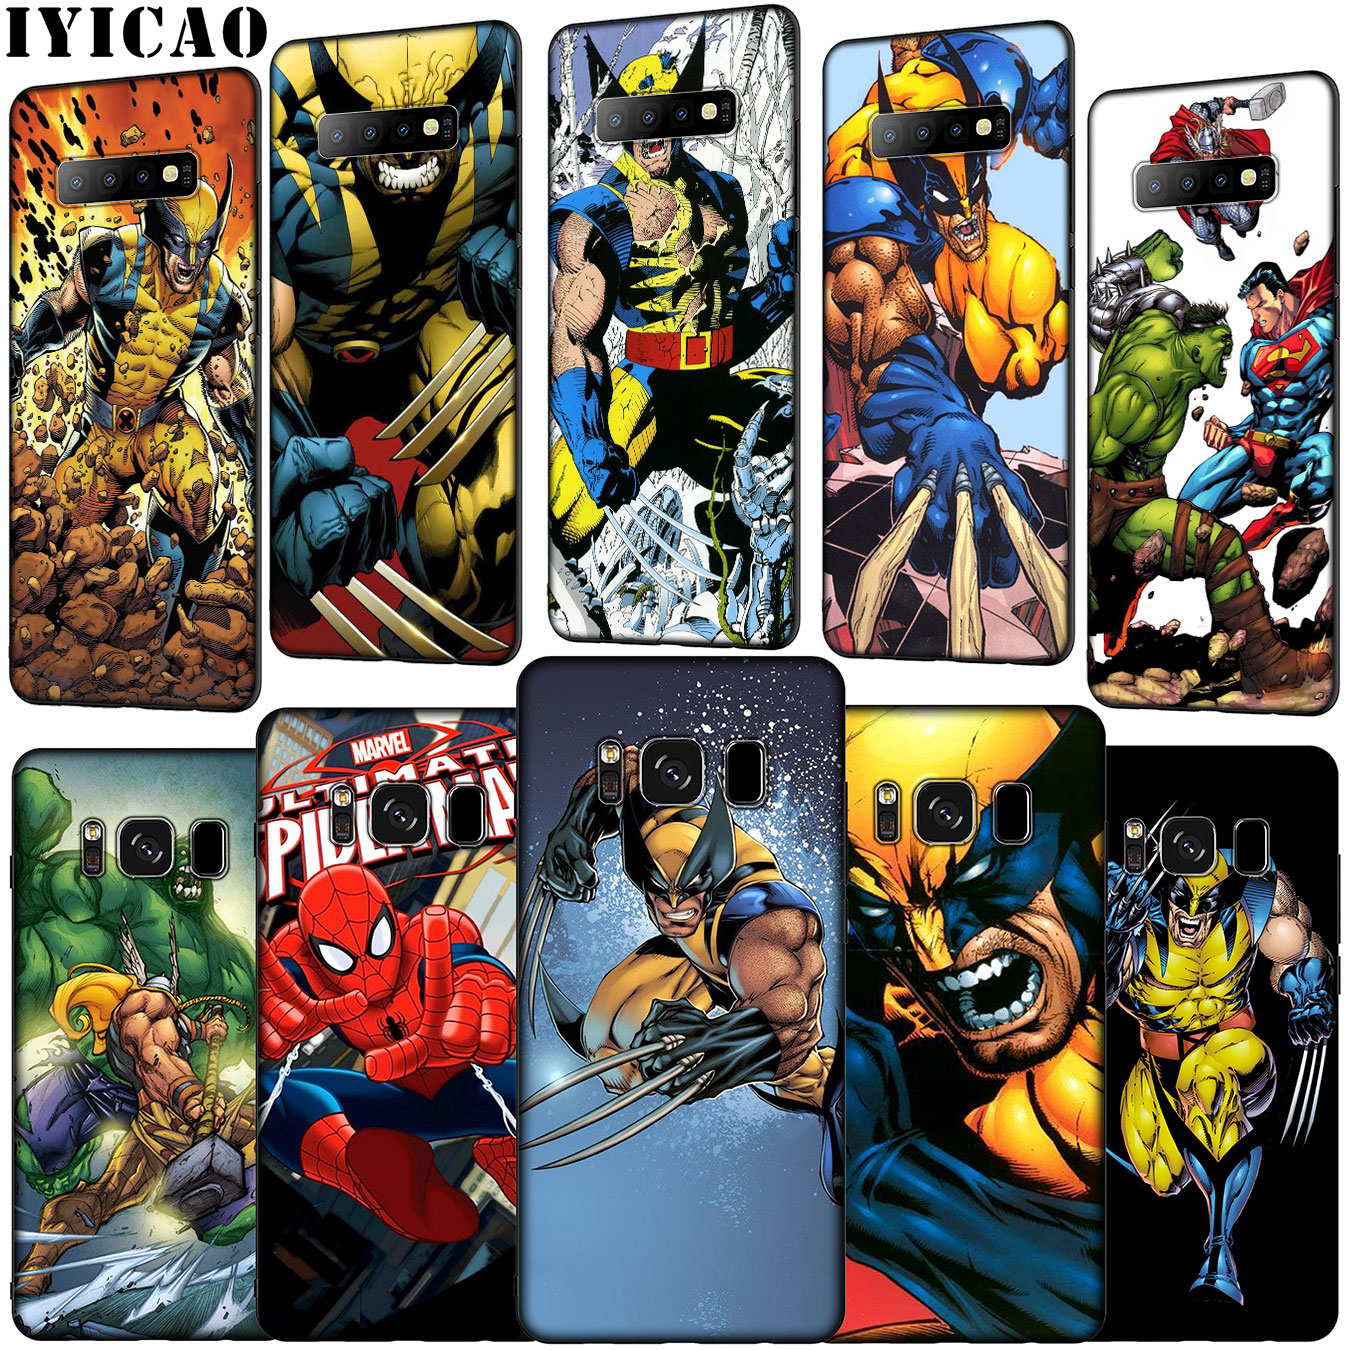 IYICAO Thor Odinson Marvel Comics Wolverine Soft Silicone Phone Case for Samsung Galaxy S10 E S9 S8 Plus S6 S7 Edge S10e Cover image